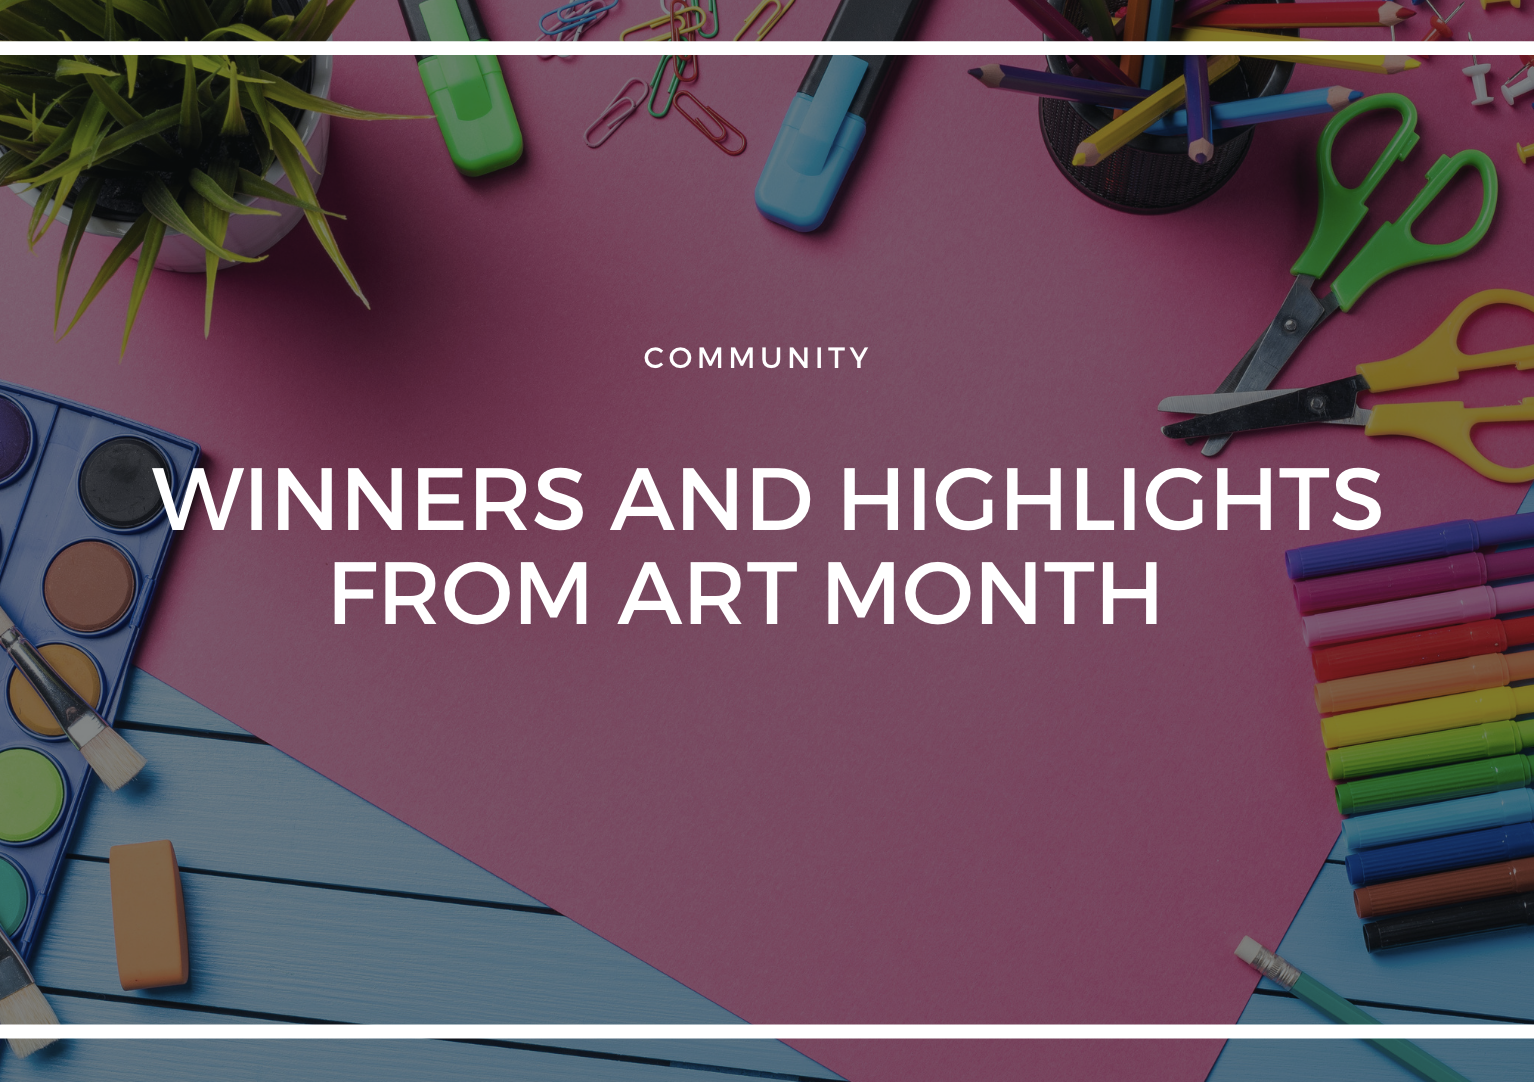 WINNERS AND HIGHLIGHTS FROM ART MONTH